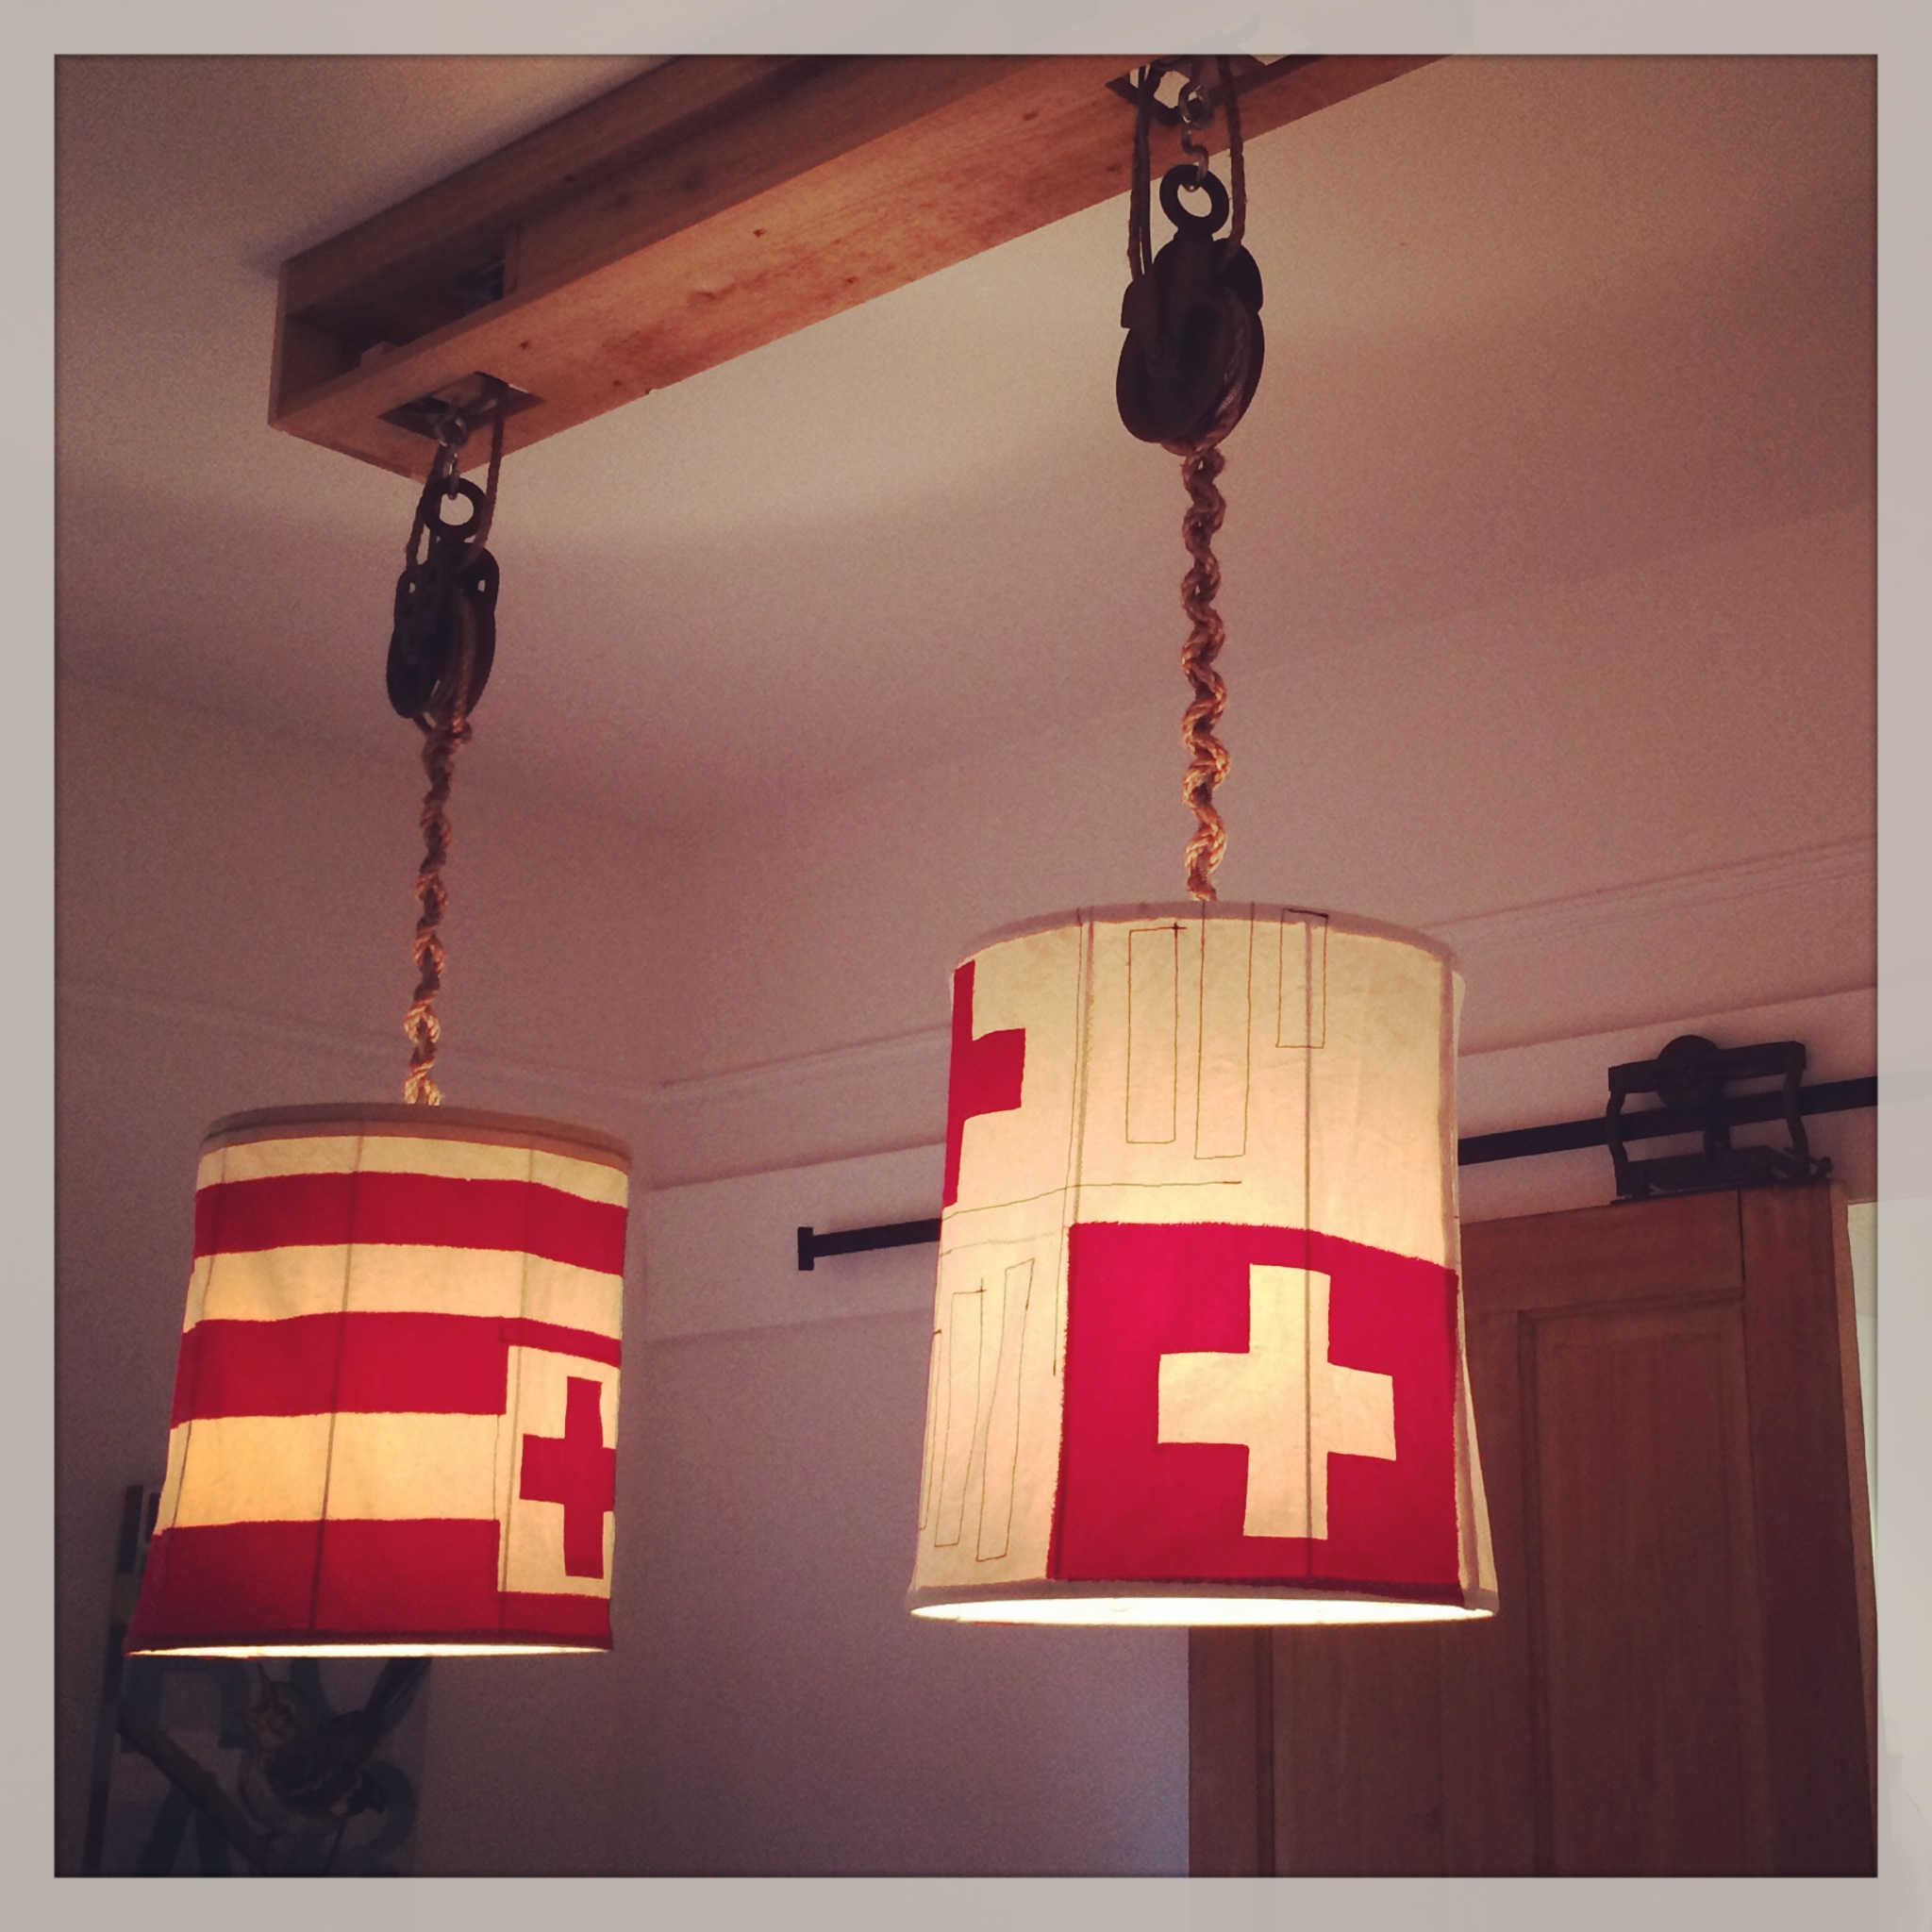 Both shades hung by a custom fixture at our studio